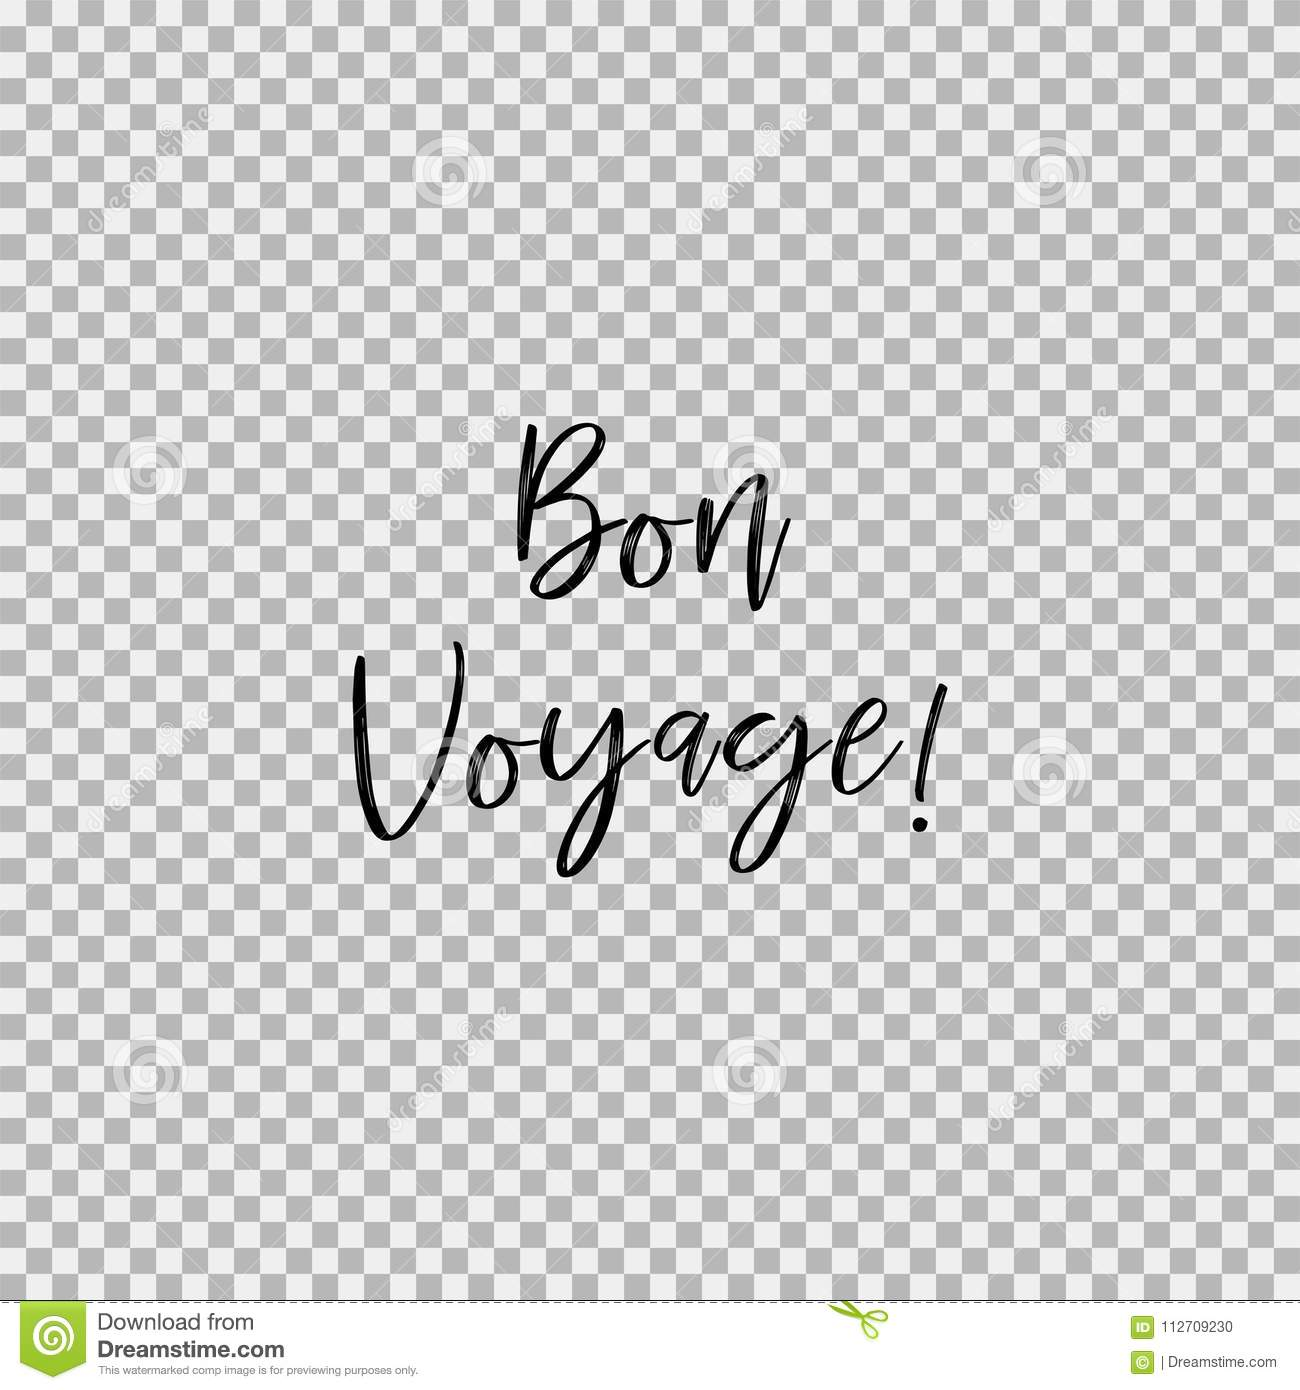 Bon Voyage Transparent Background Stock Vector Illustration Of Vintage Holiday 112709230